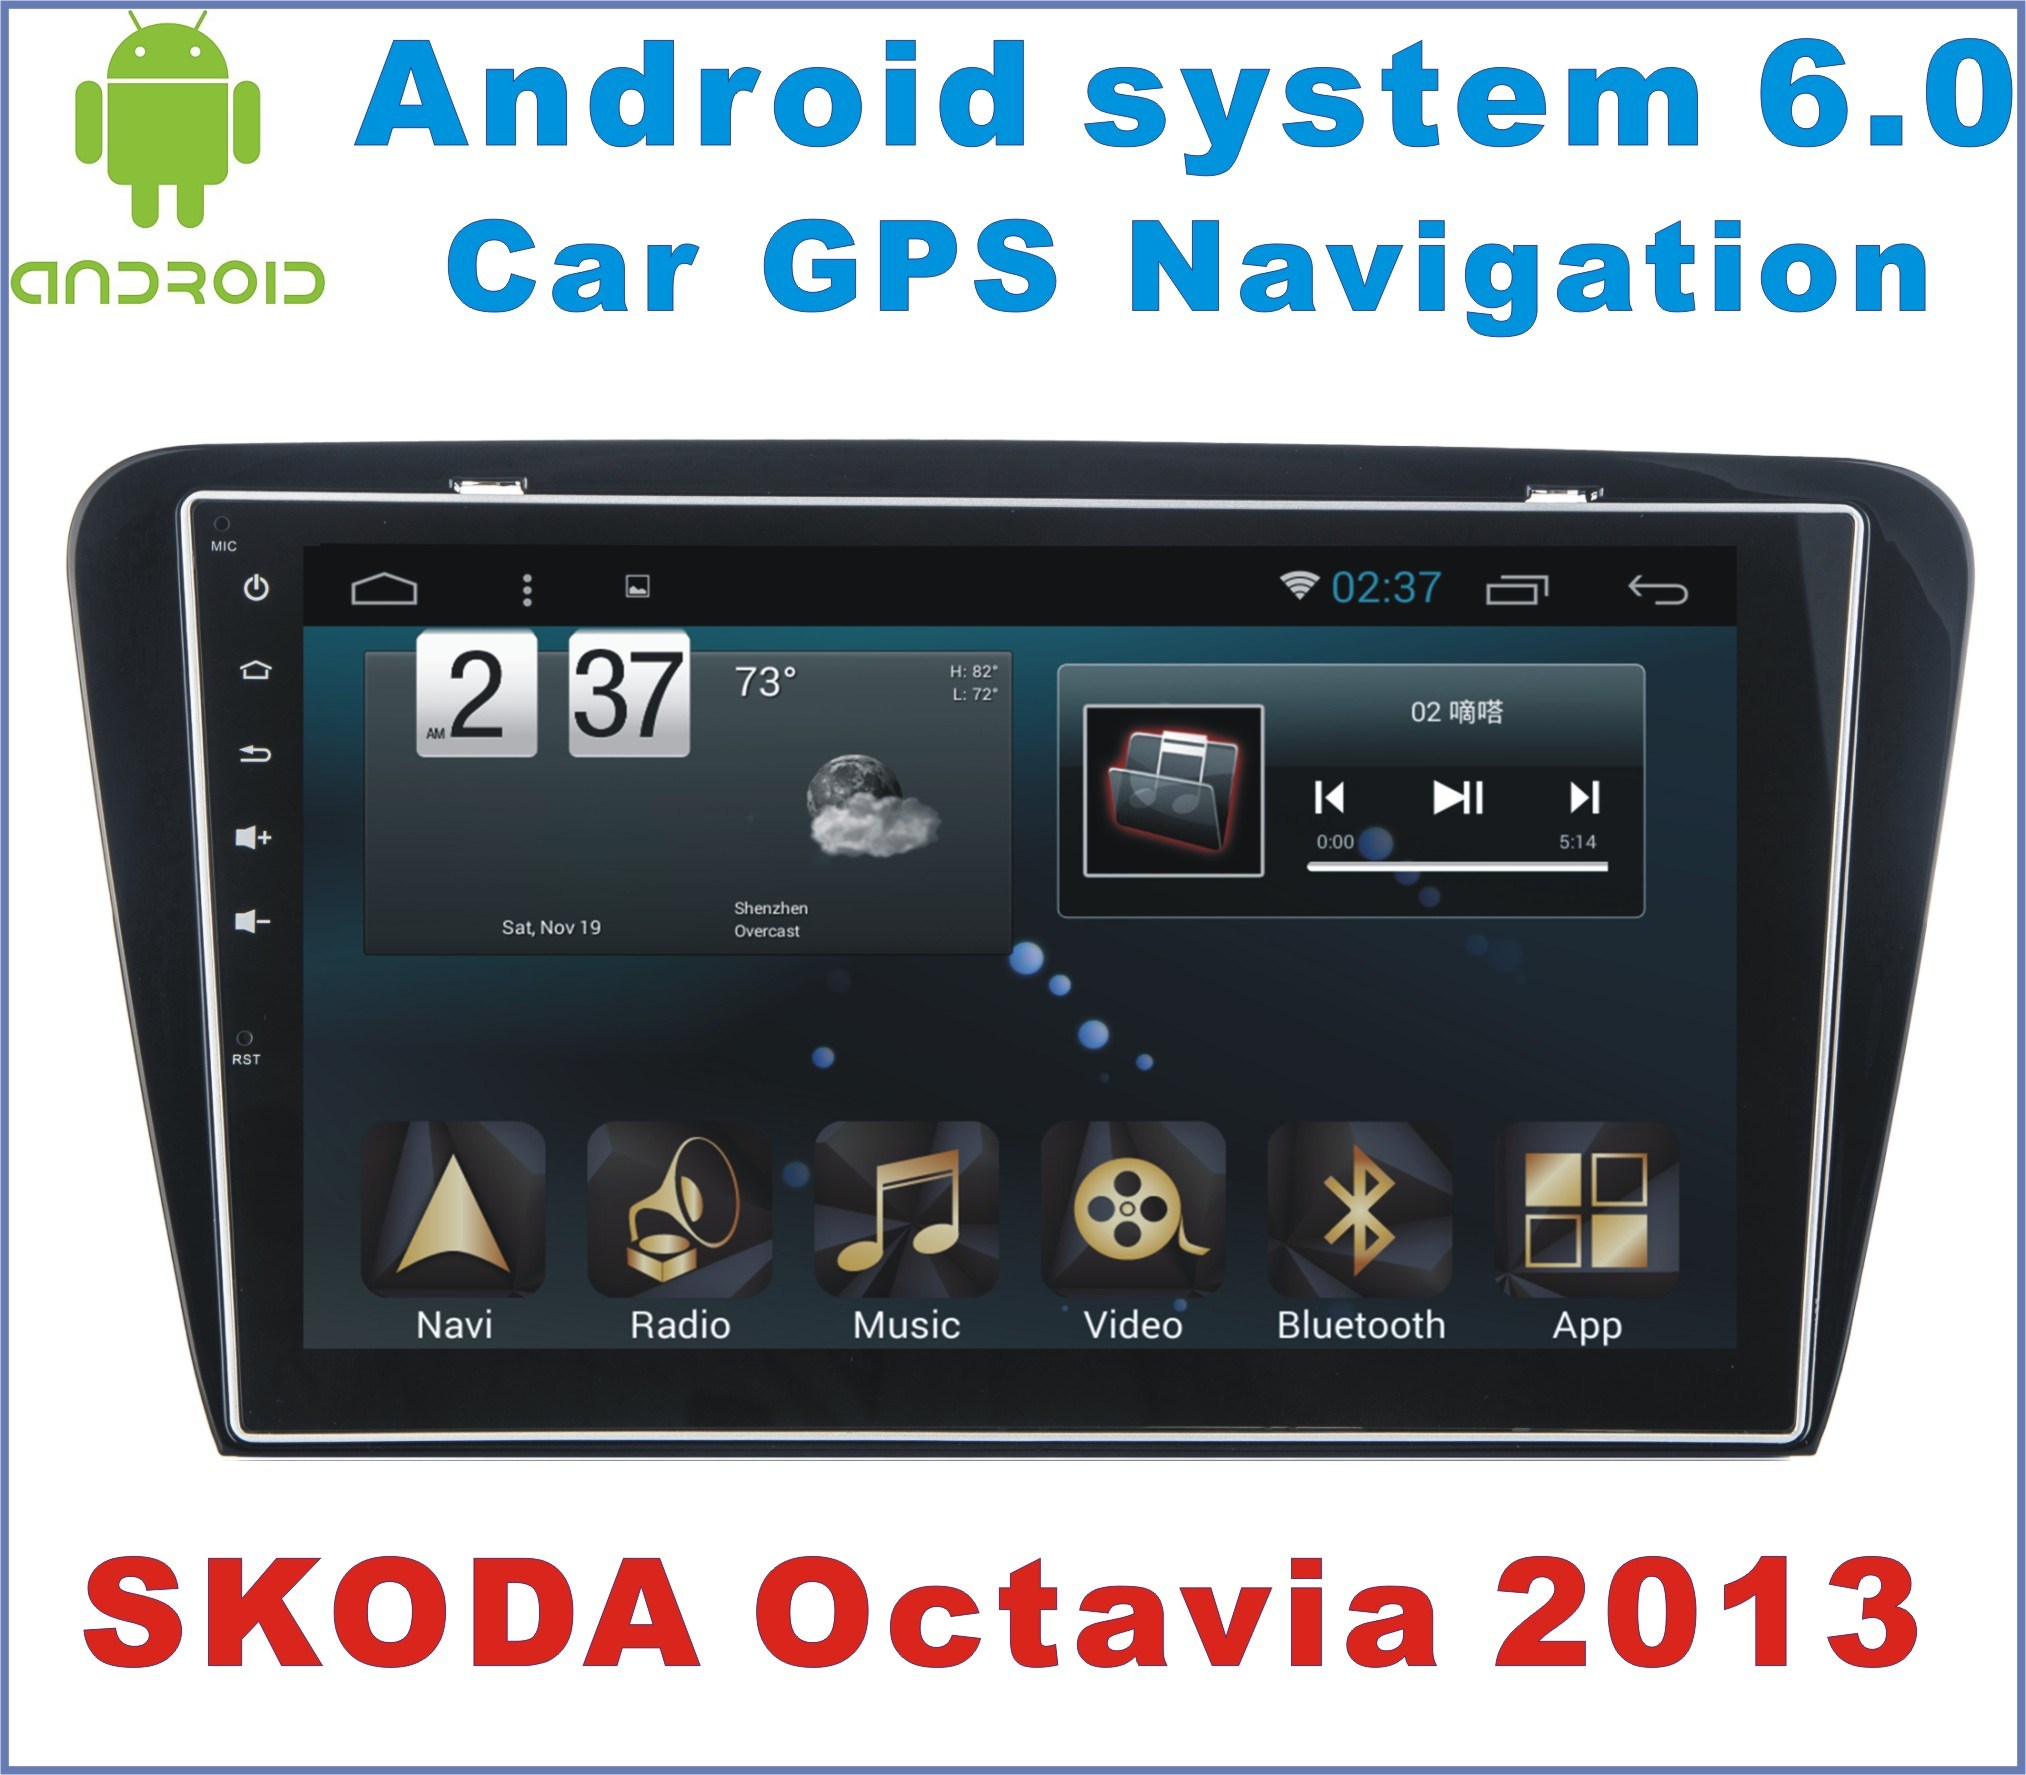 Android System 6.0 Car GPS Navigation for Skoda Octavia 2013 with Car DVD